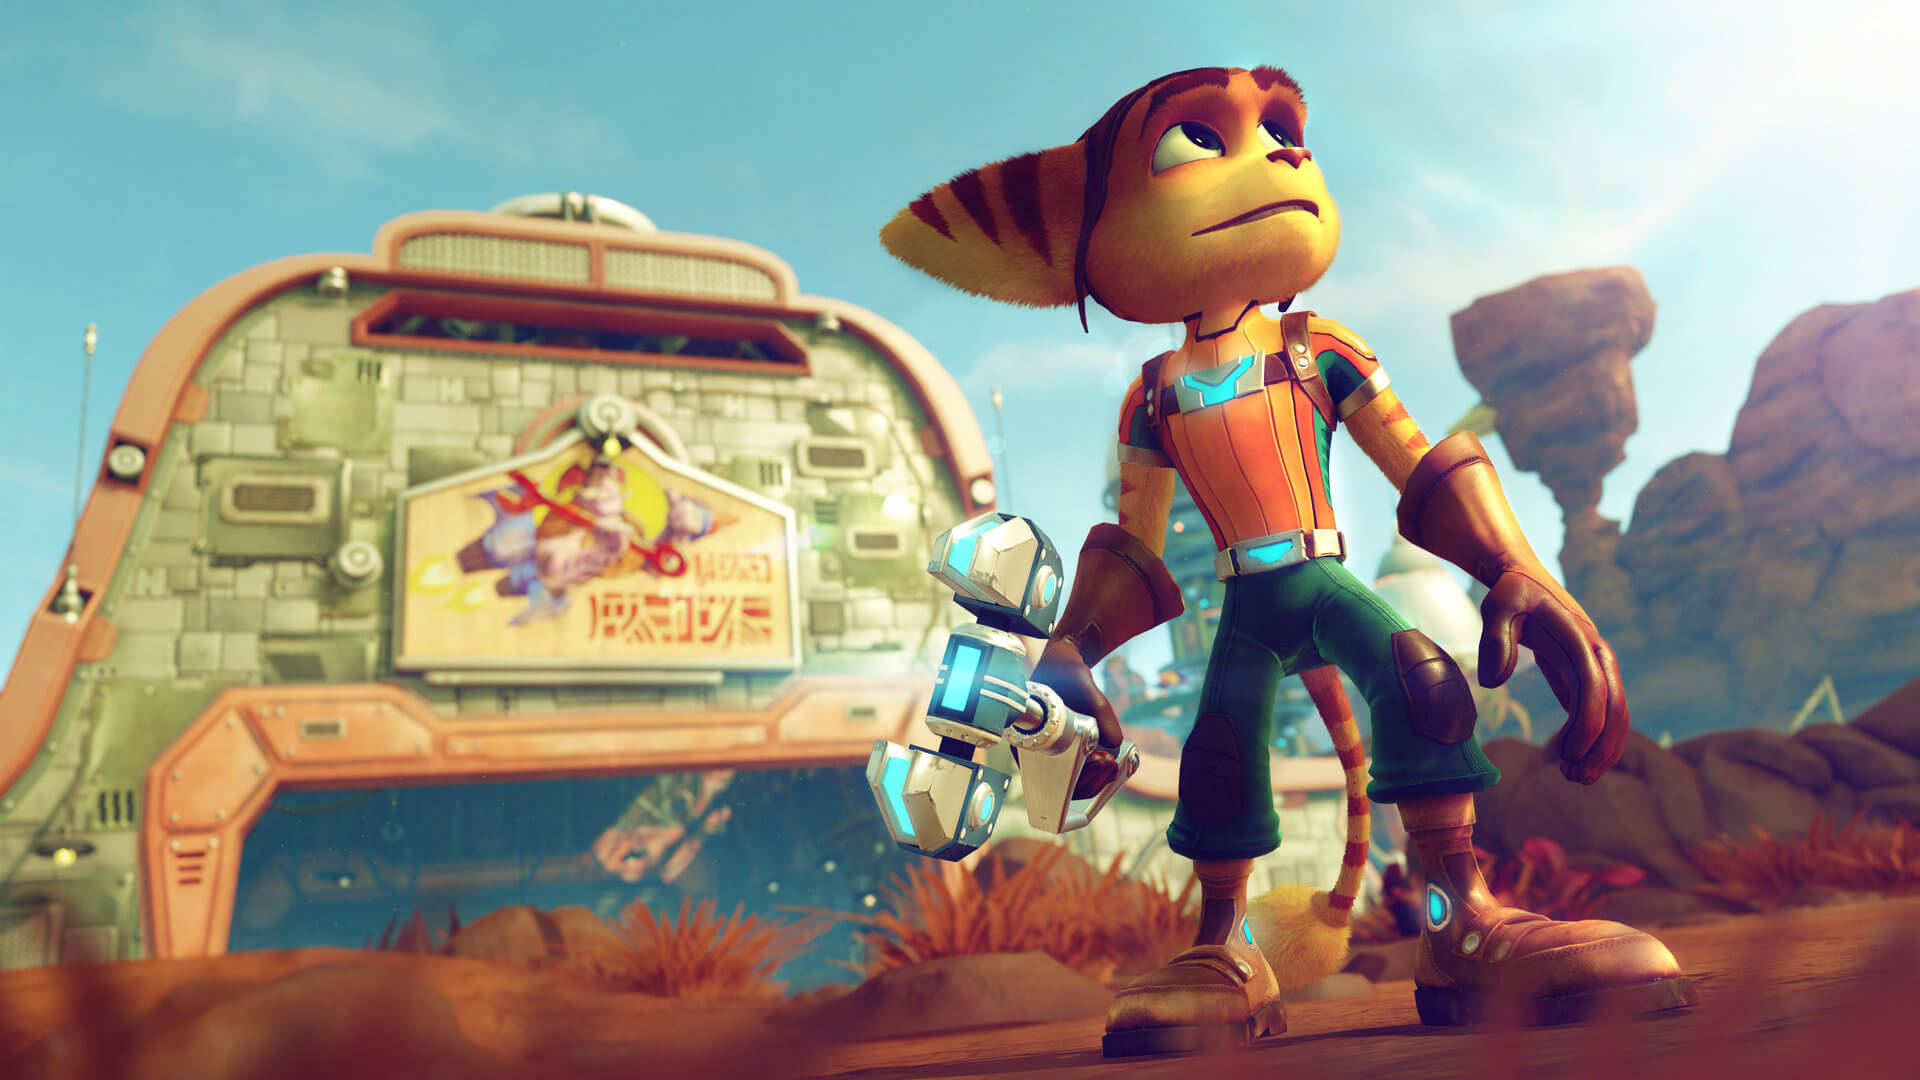 Ratchet & Clank - PS4 Exclusive Game